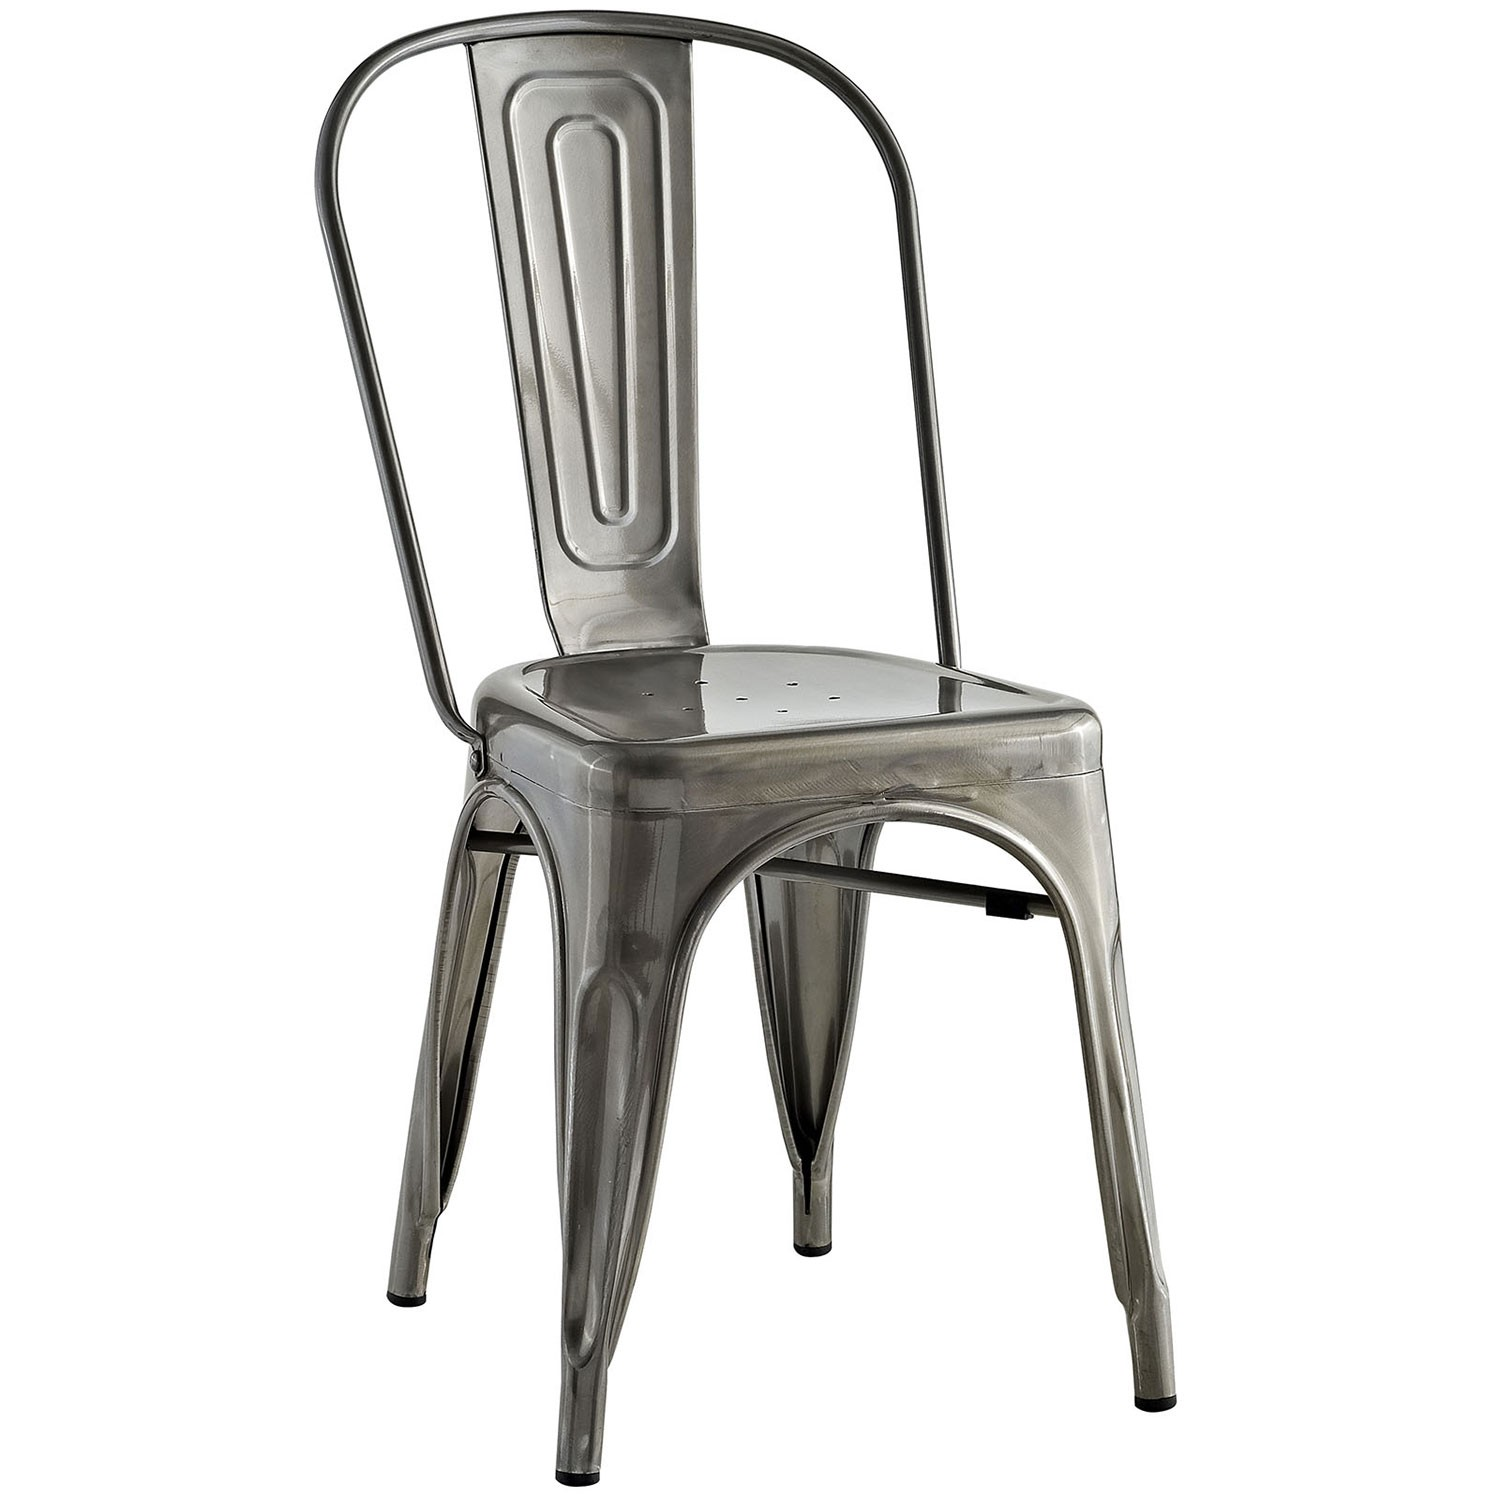 Modway Promenade Side Chair - Gunmetal